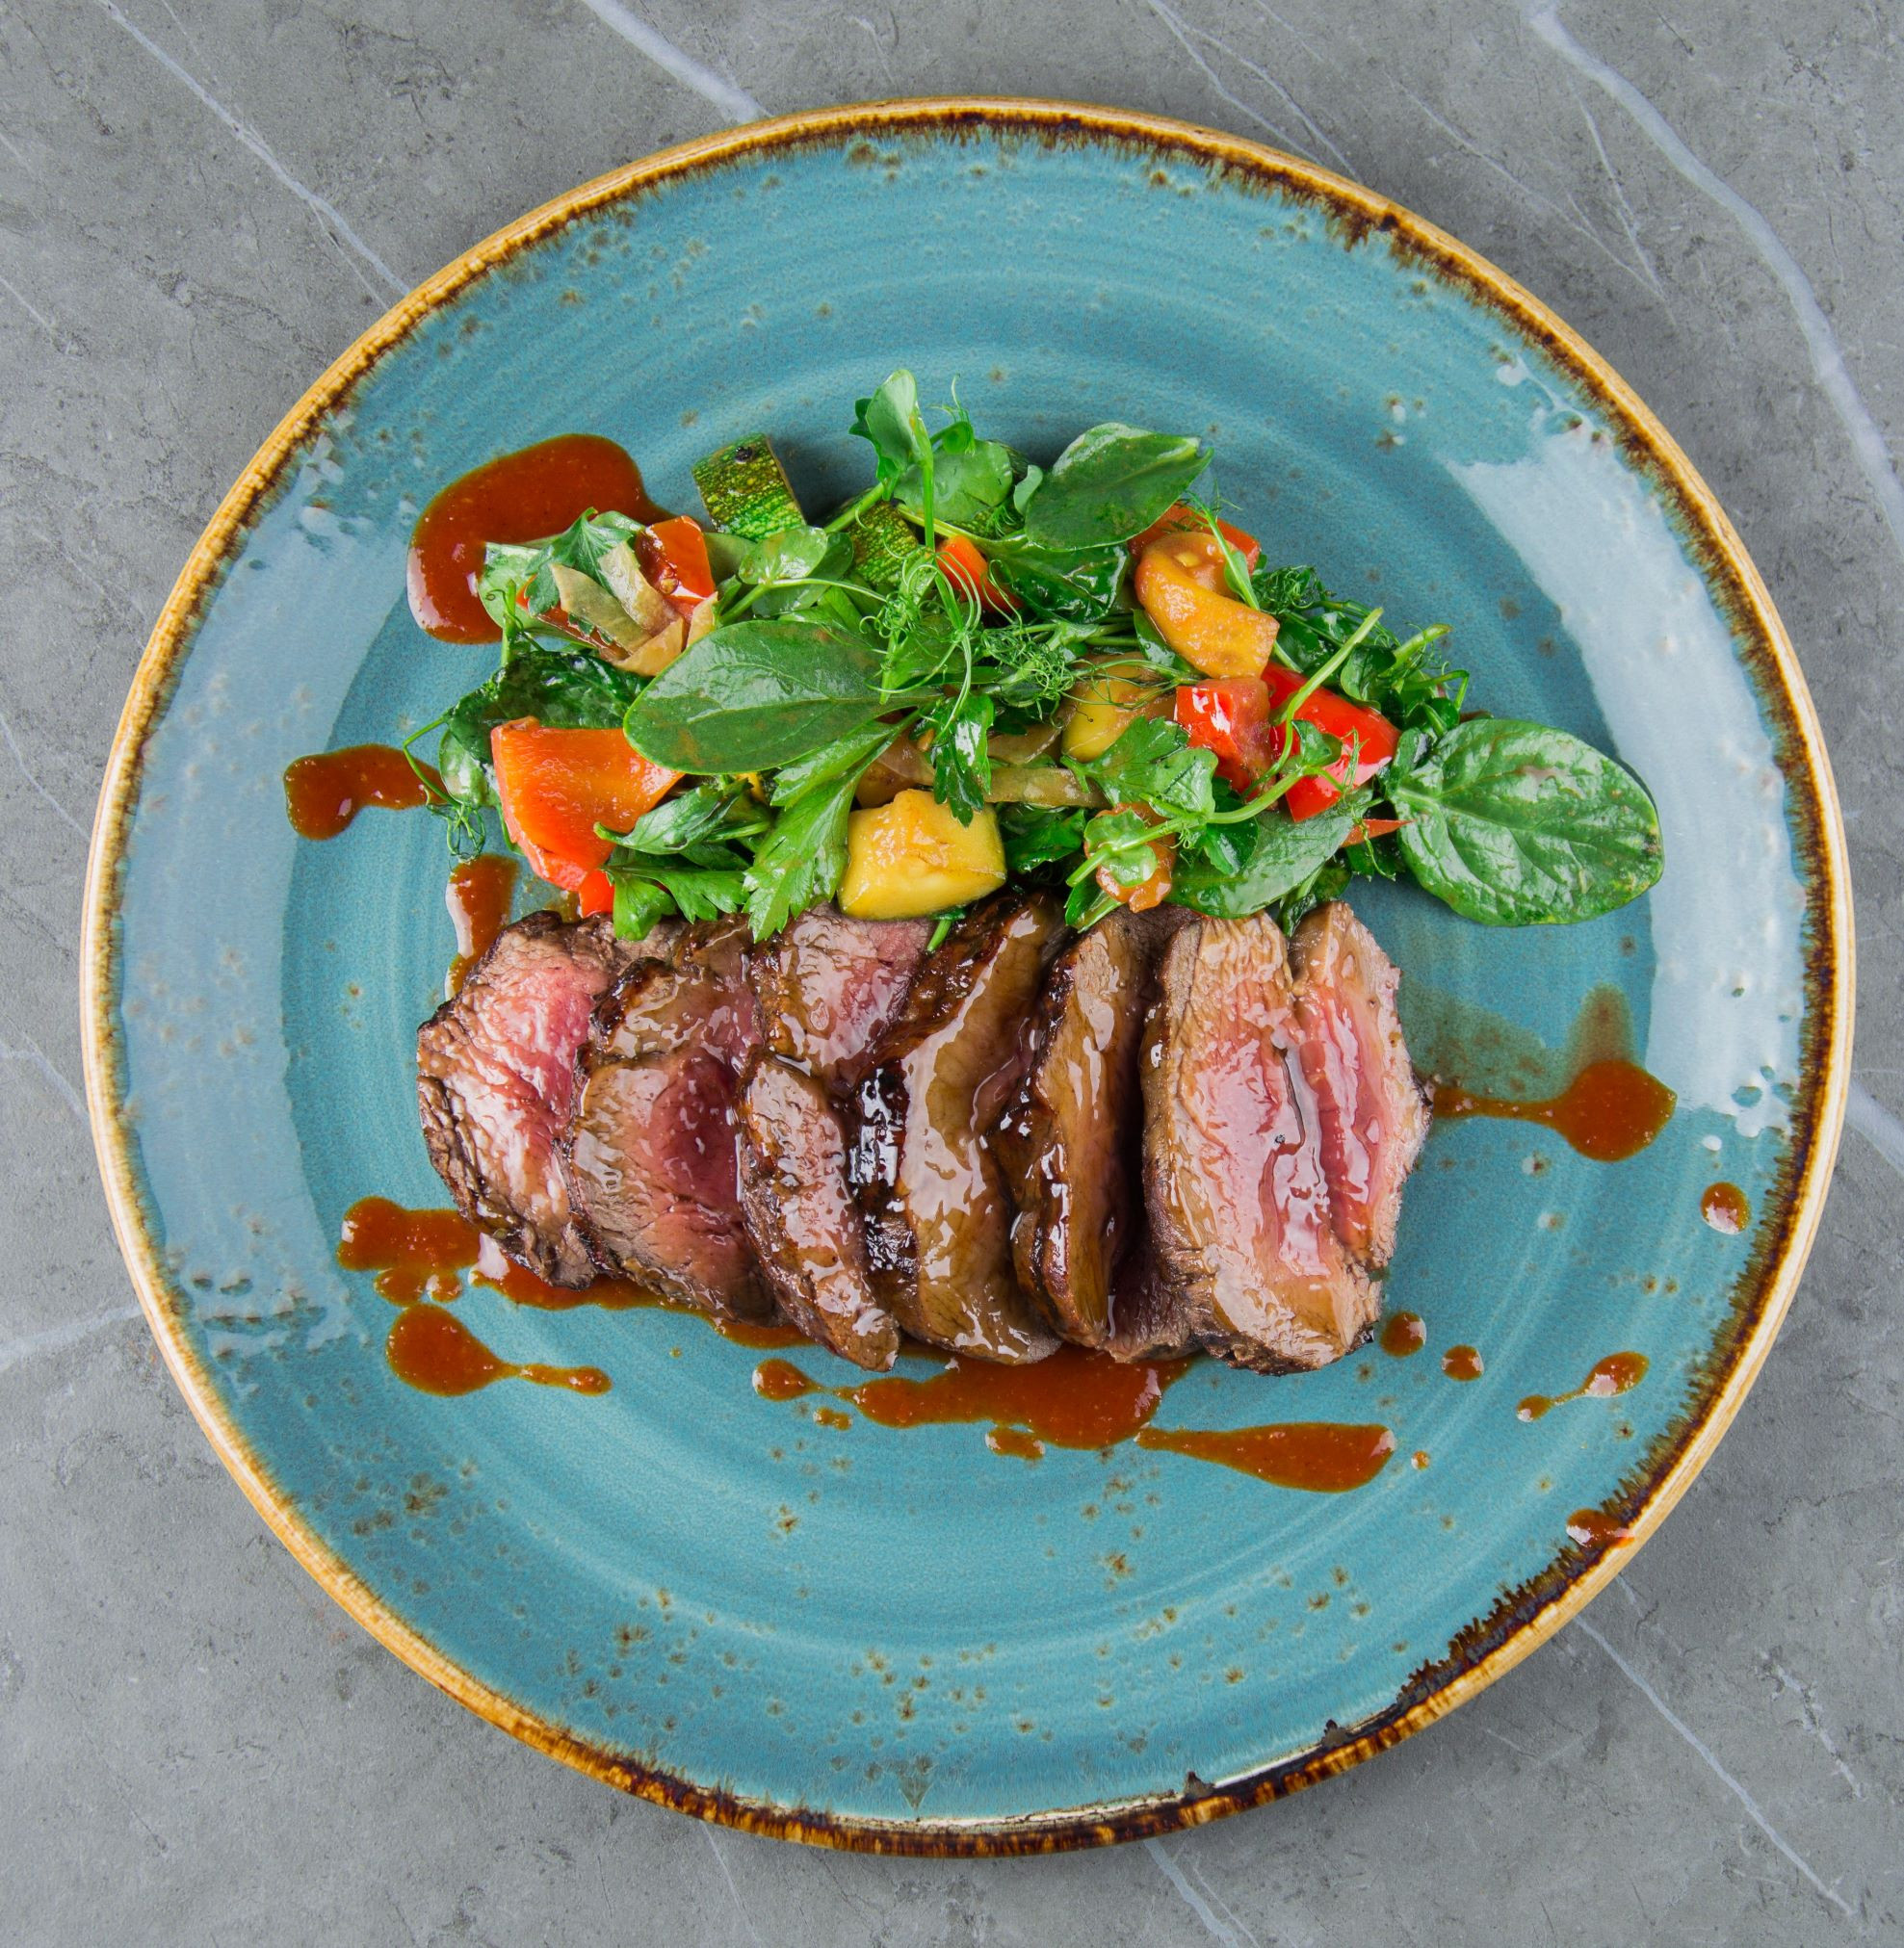 Quick and Easy Flap or Skirt Steak